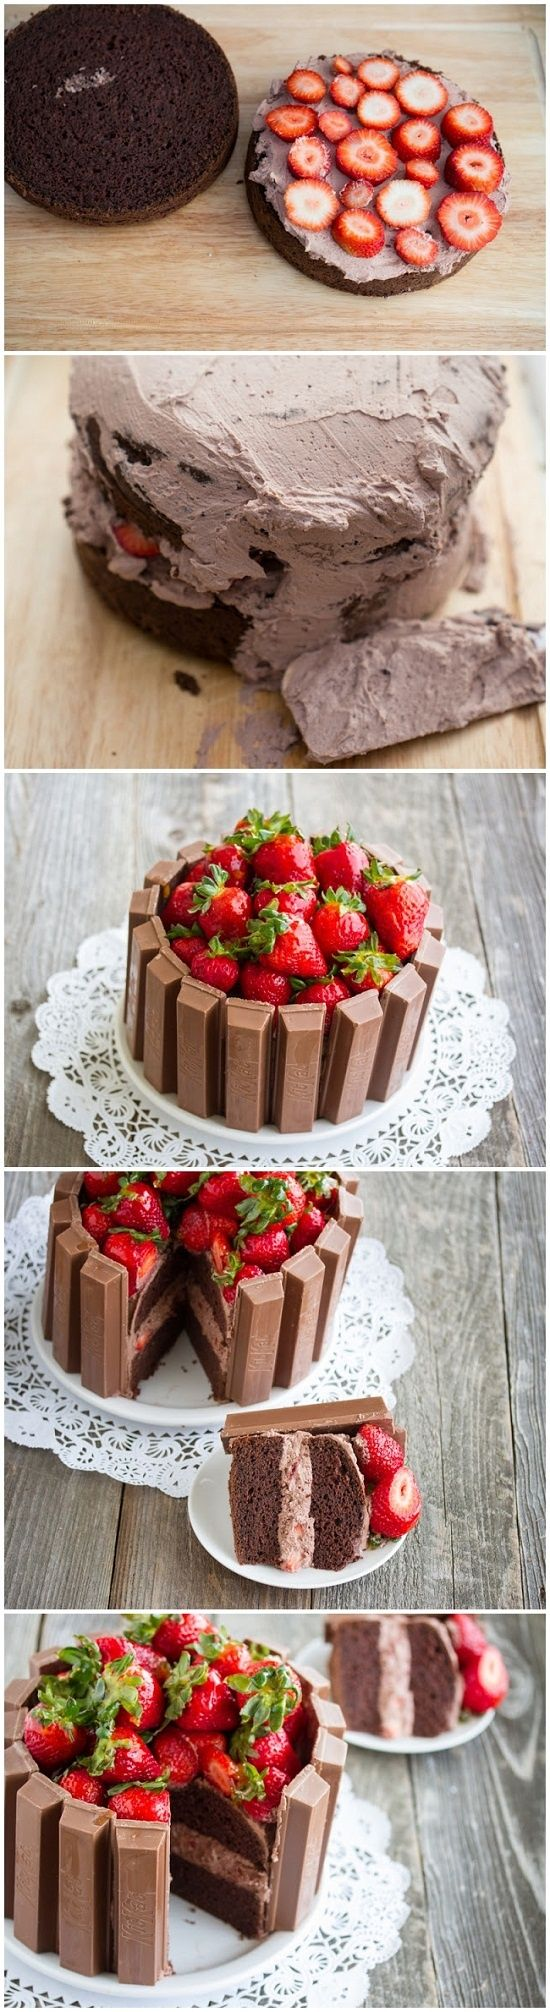 Strawberry Kit Kat Cake @Sarah Chintomby Pearson lets make this for my birthday this year!